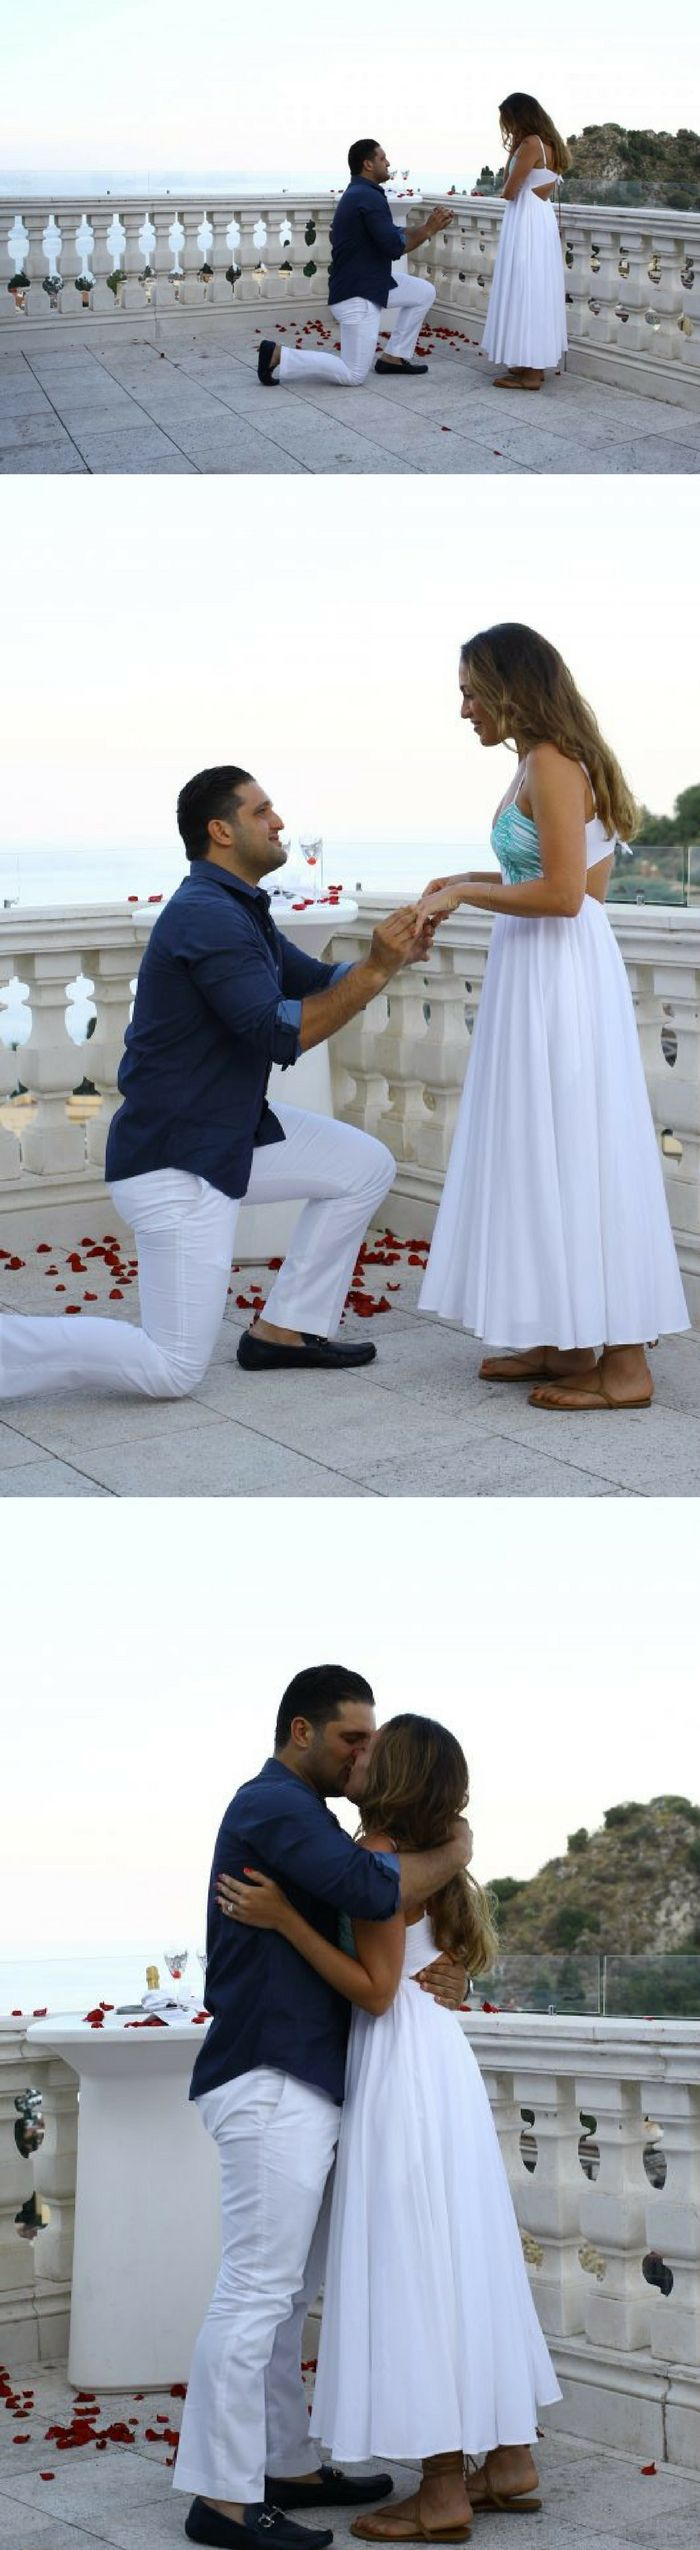 He asked her to marry him while they were visiting her family's origins in Italy!.